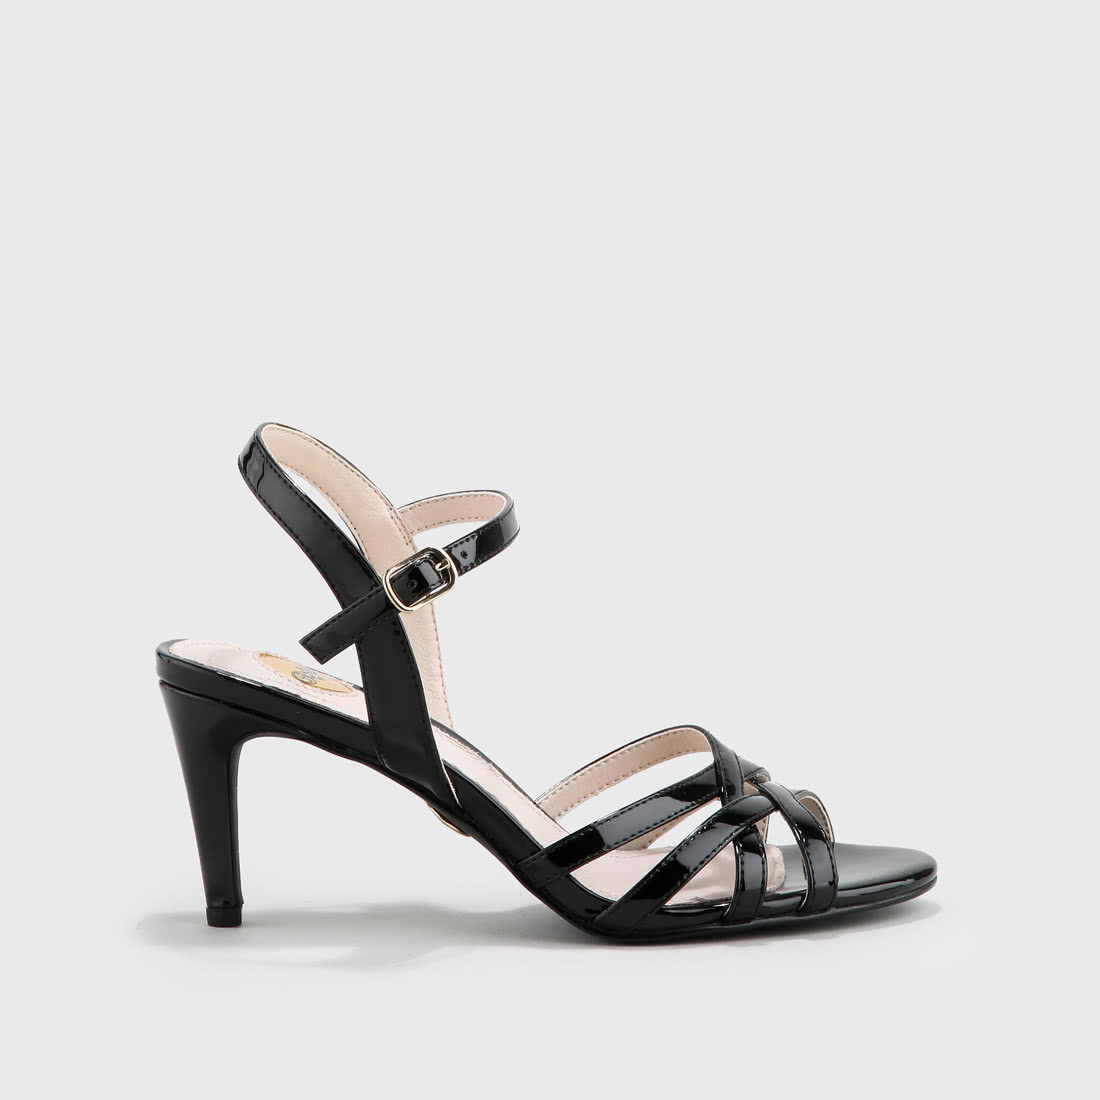 a41110c09e Agneta sandals patent leather look black buy online in BUFFALO ...